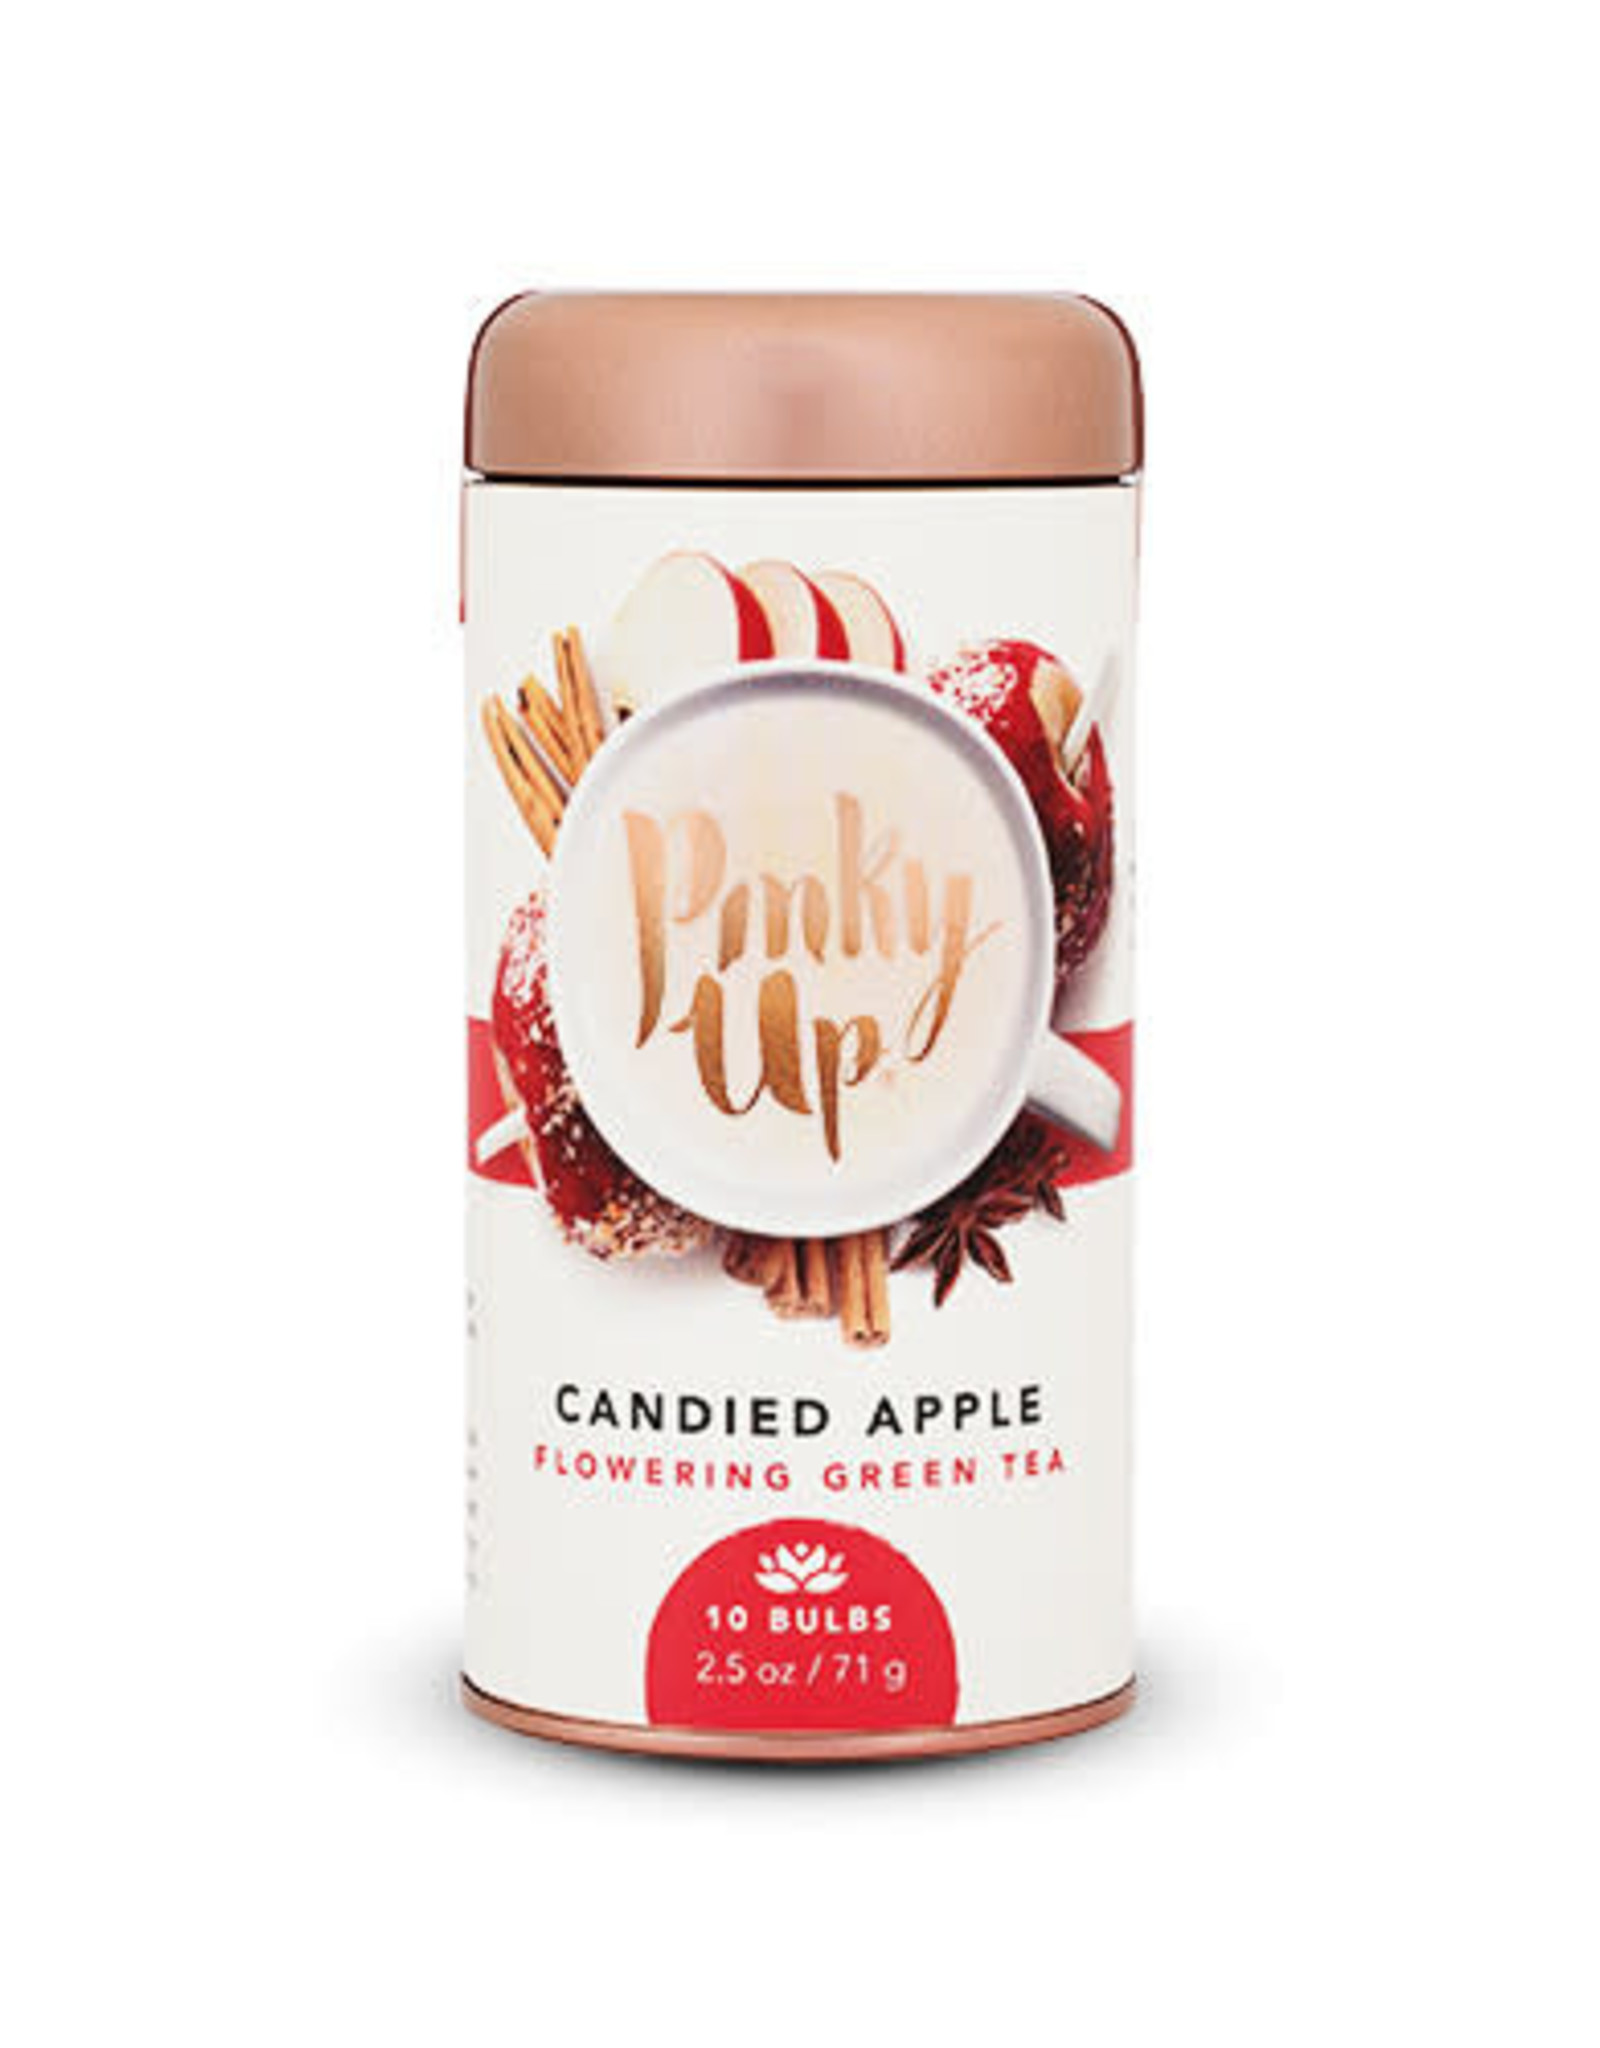 PINKY UP CANDIED APPLE FLOWERING TEA